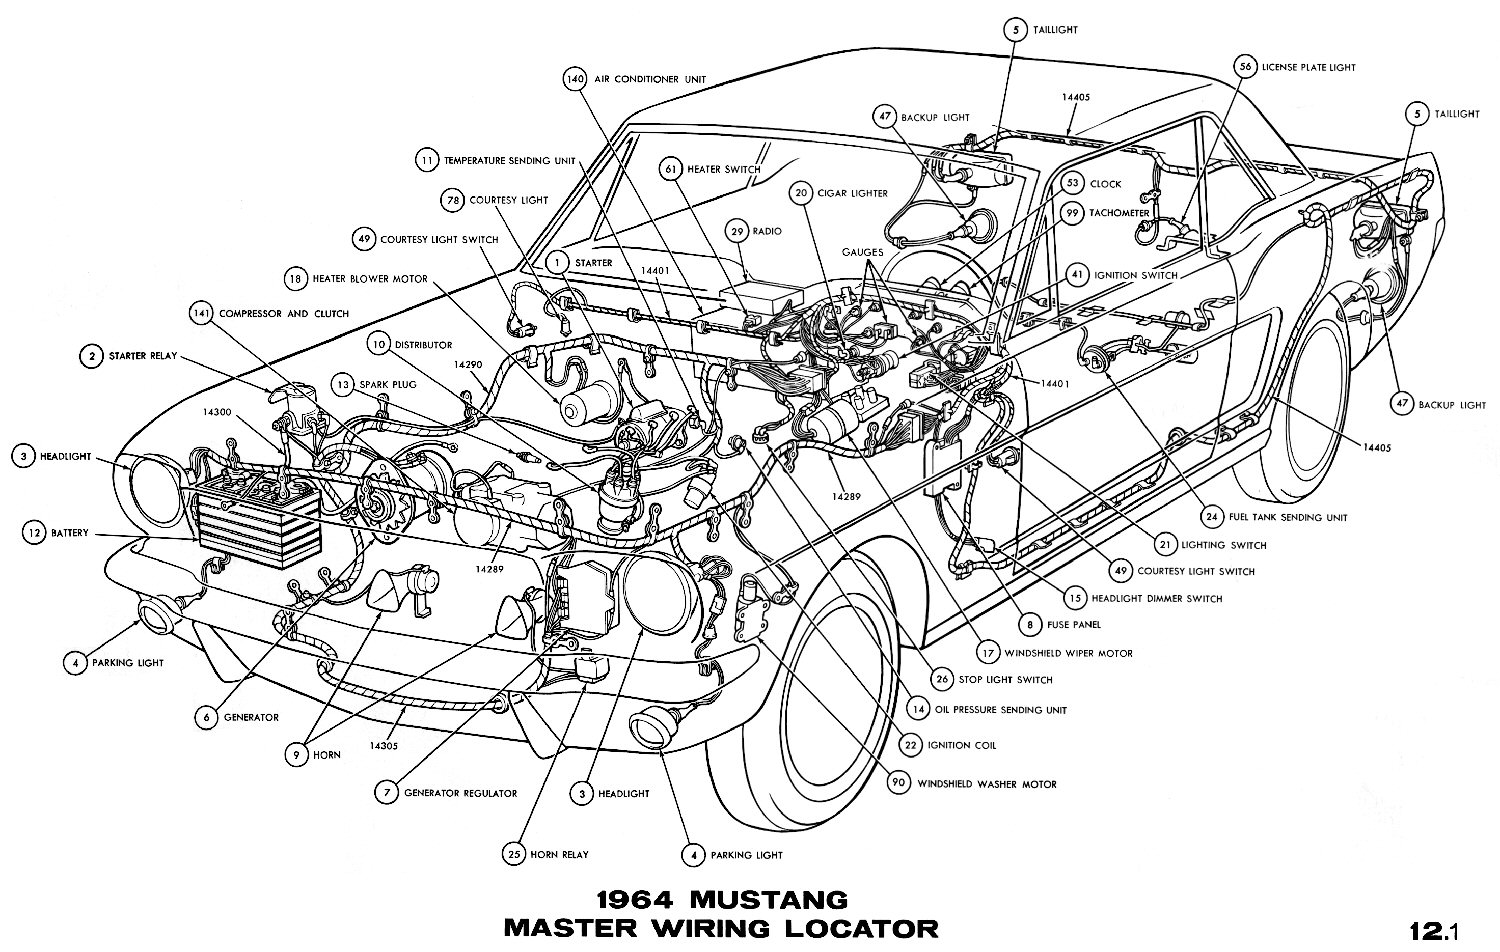 2001 mustang wiper diagram